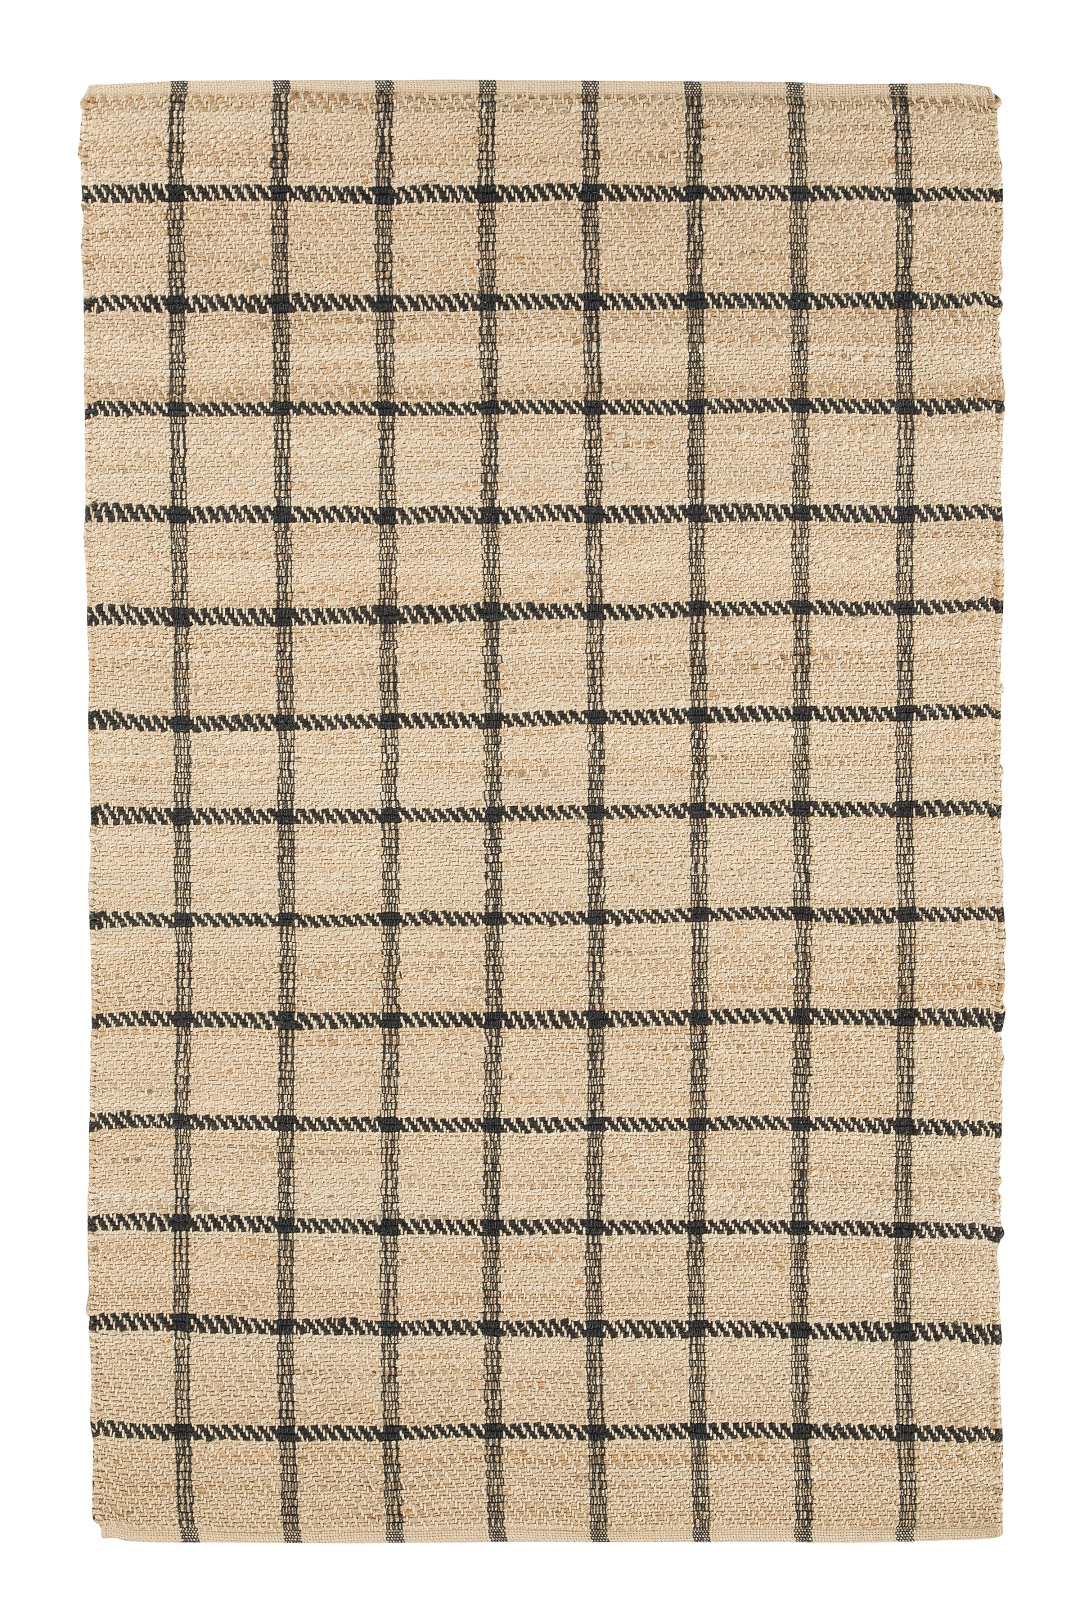 Augora Hills Medium Rug R400792 By Ashley Checkered